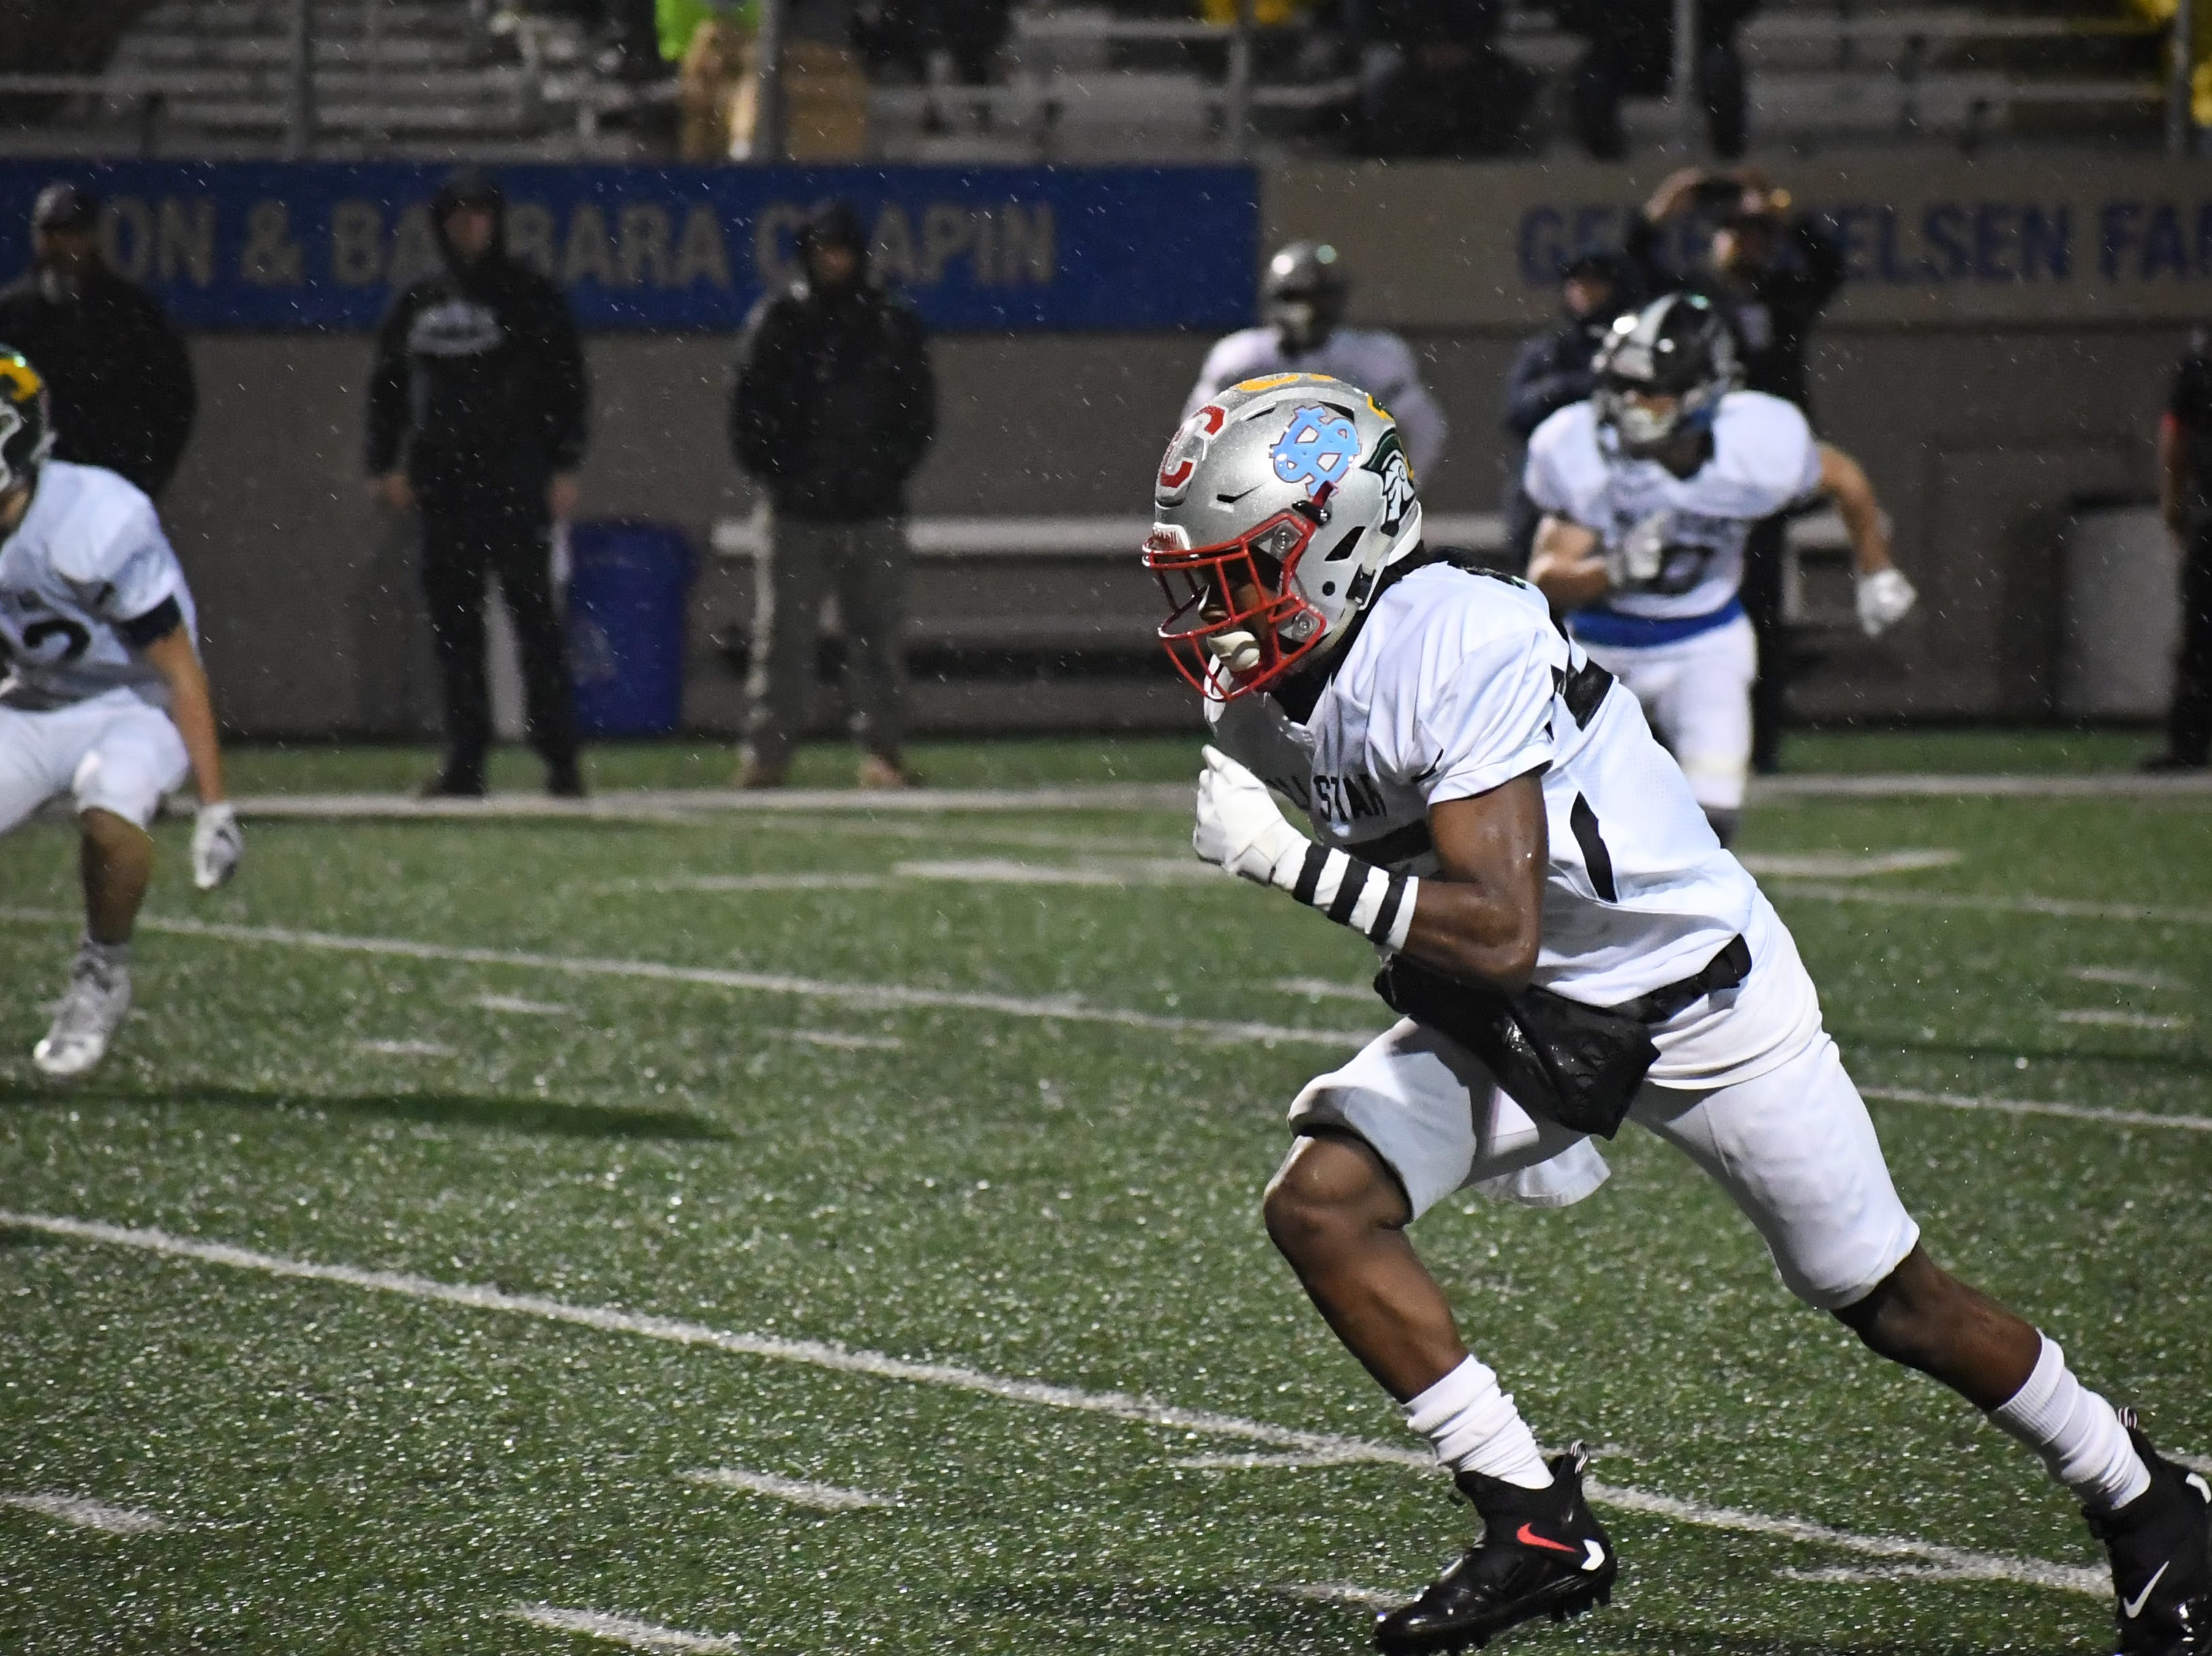 Action from Friday night's Central Coast All Star Game.